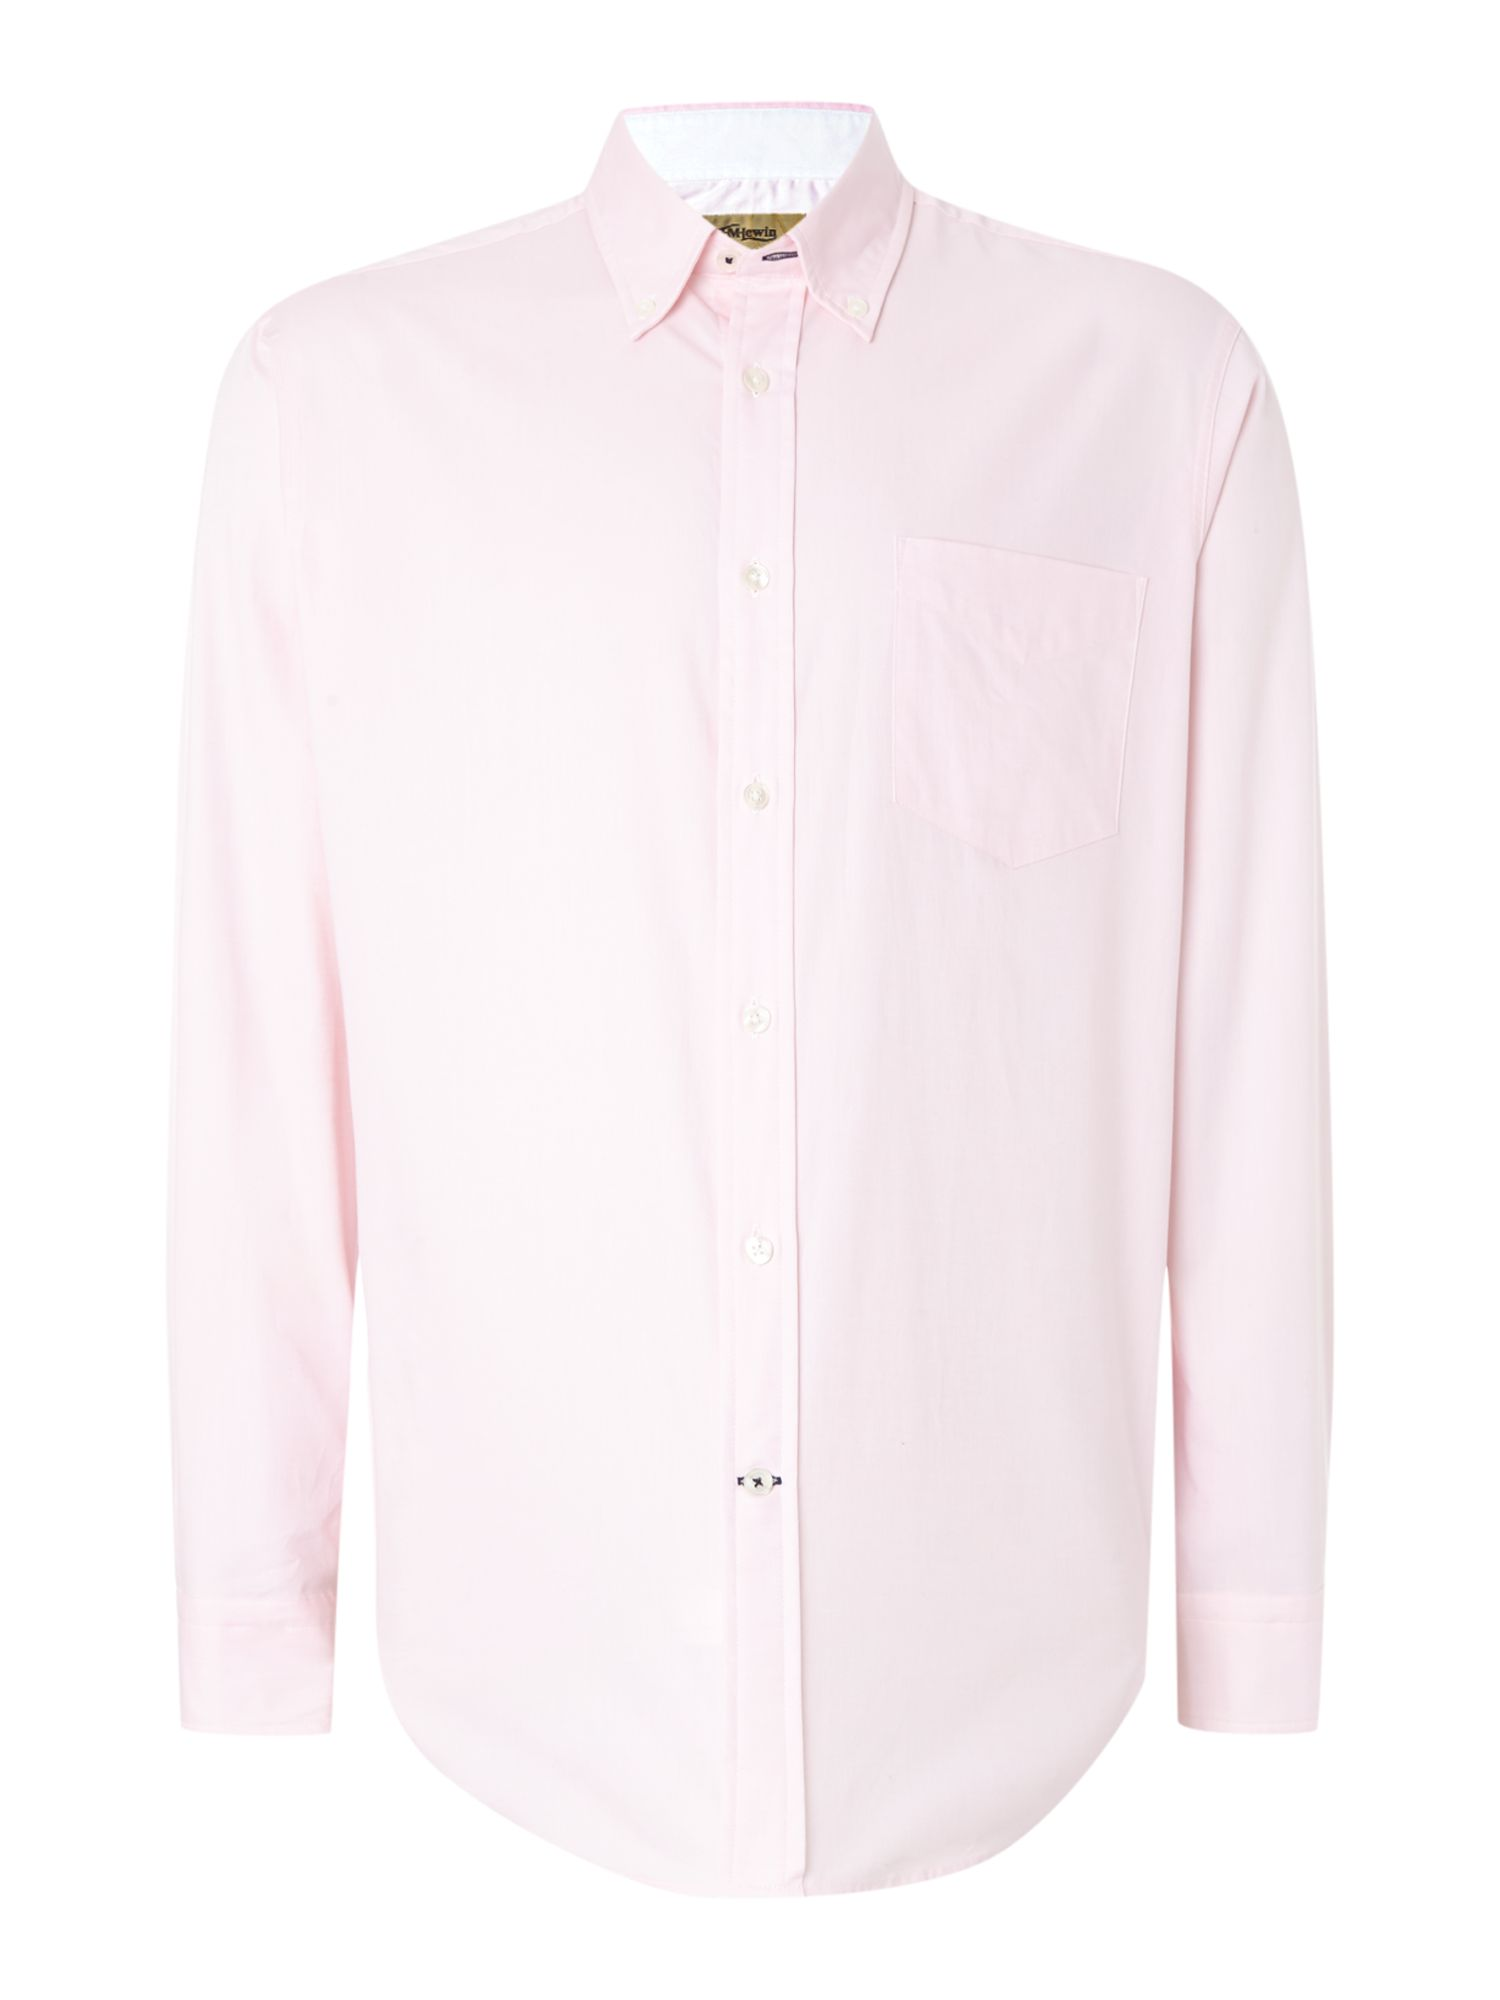 TM Lewin Men's TM Lewin Oxford Relaxed Fit Casual Shirt, Pink